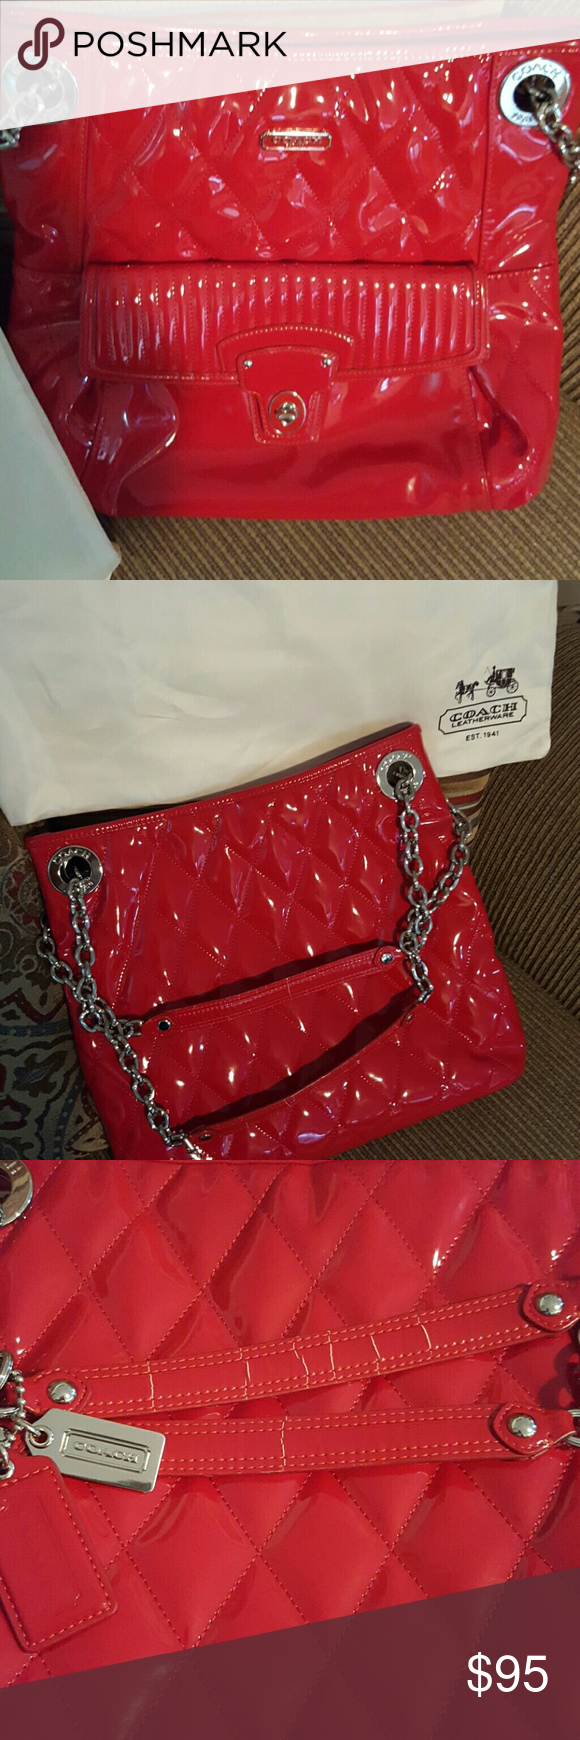 Coach Poppy Liquid red and tote There is only two spots on the inside and the handle has some cracks shown in the pictures Coach Bags Totes